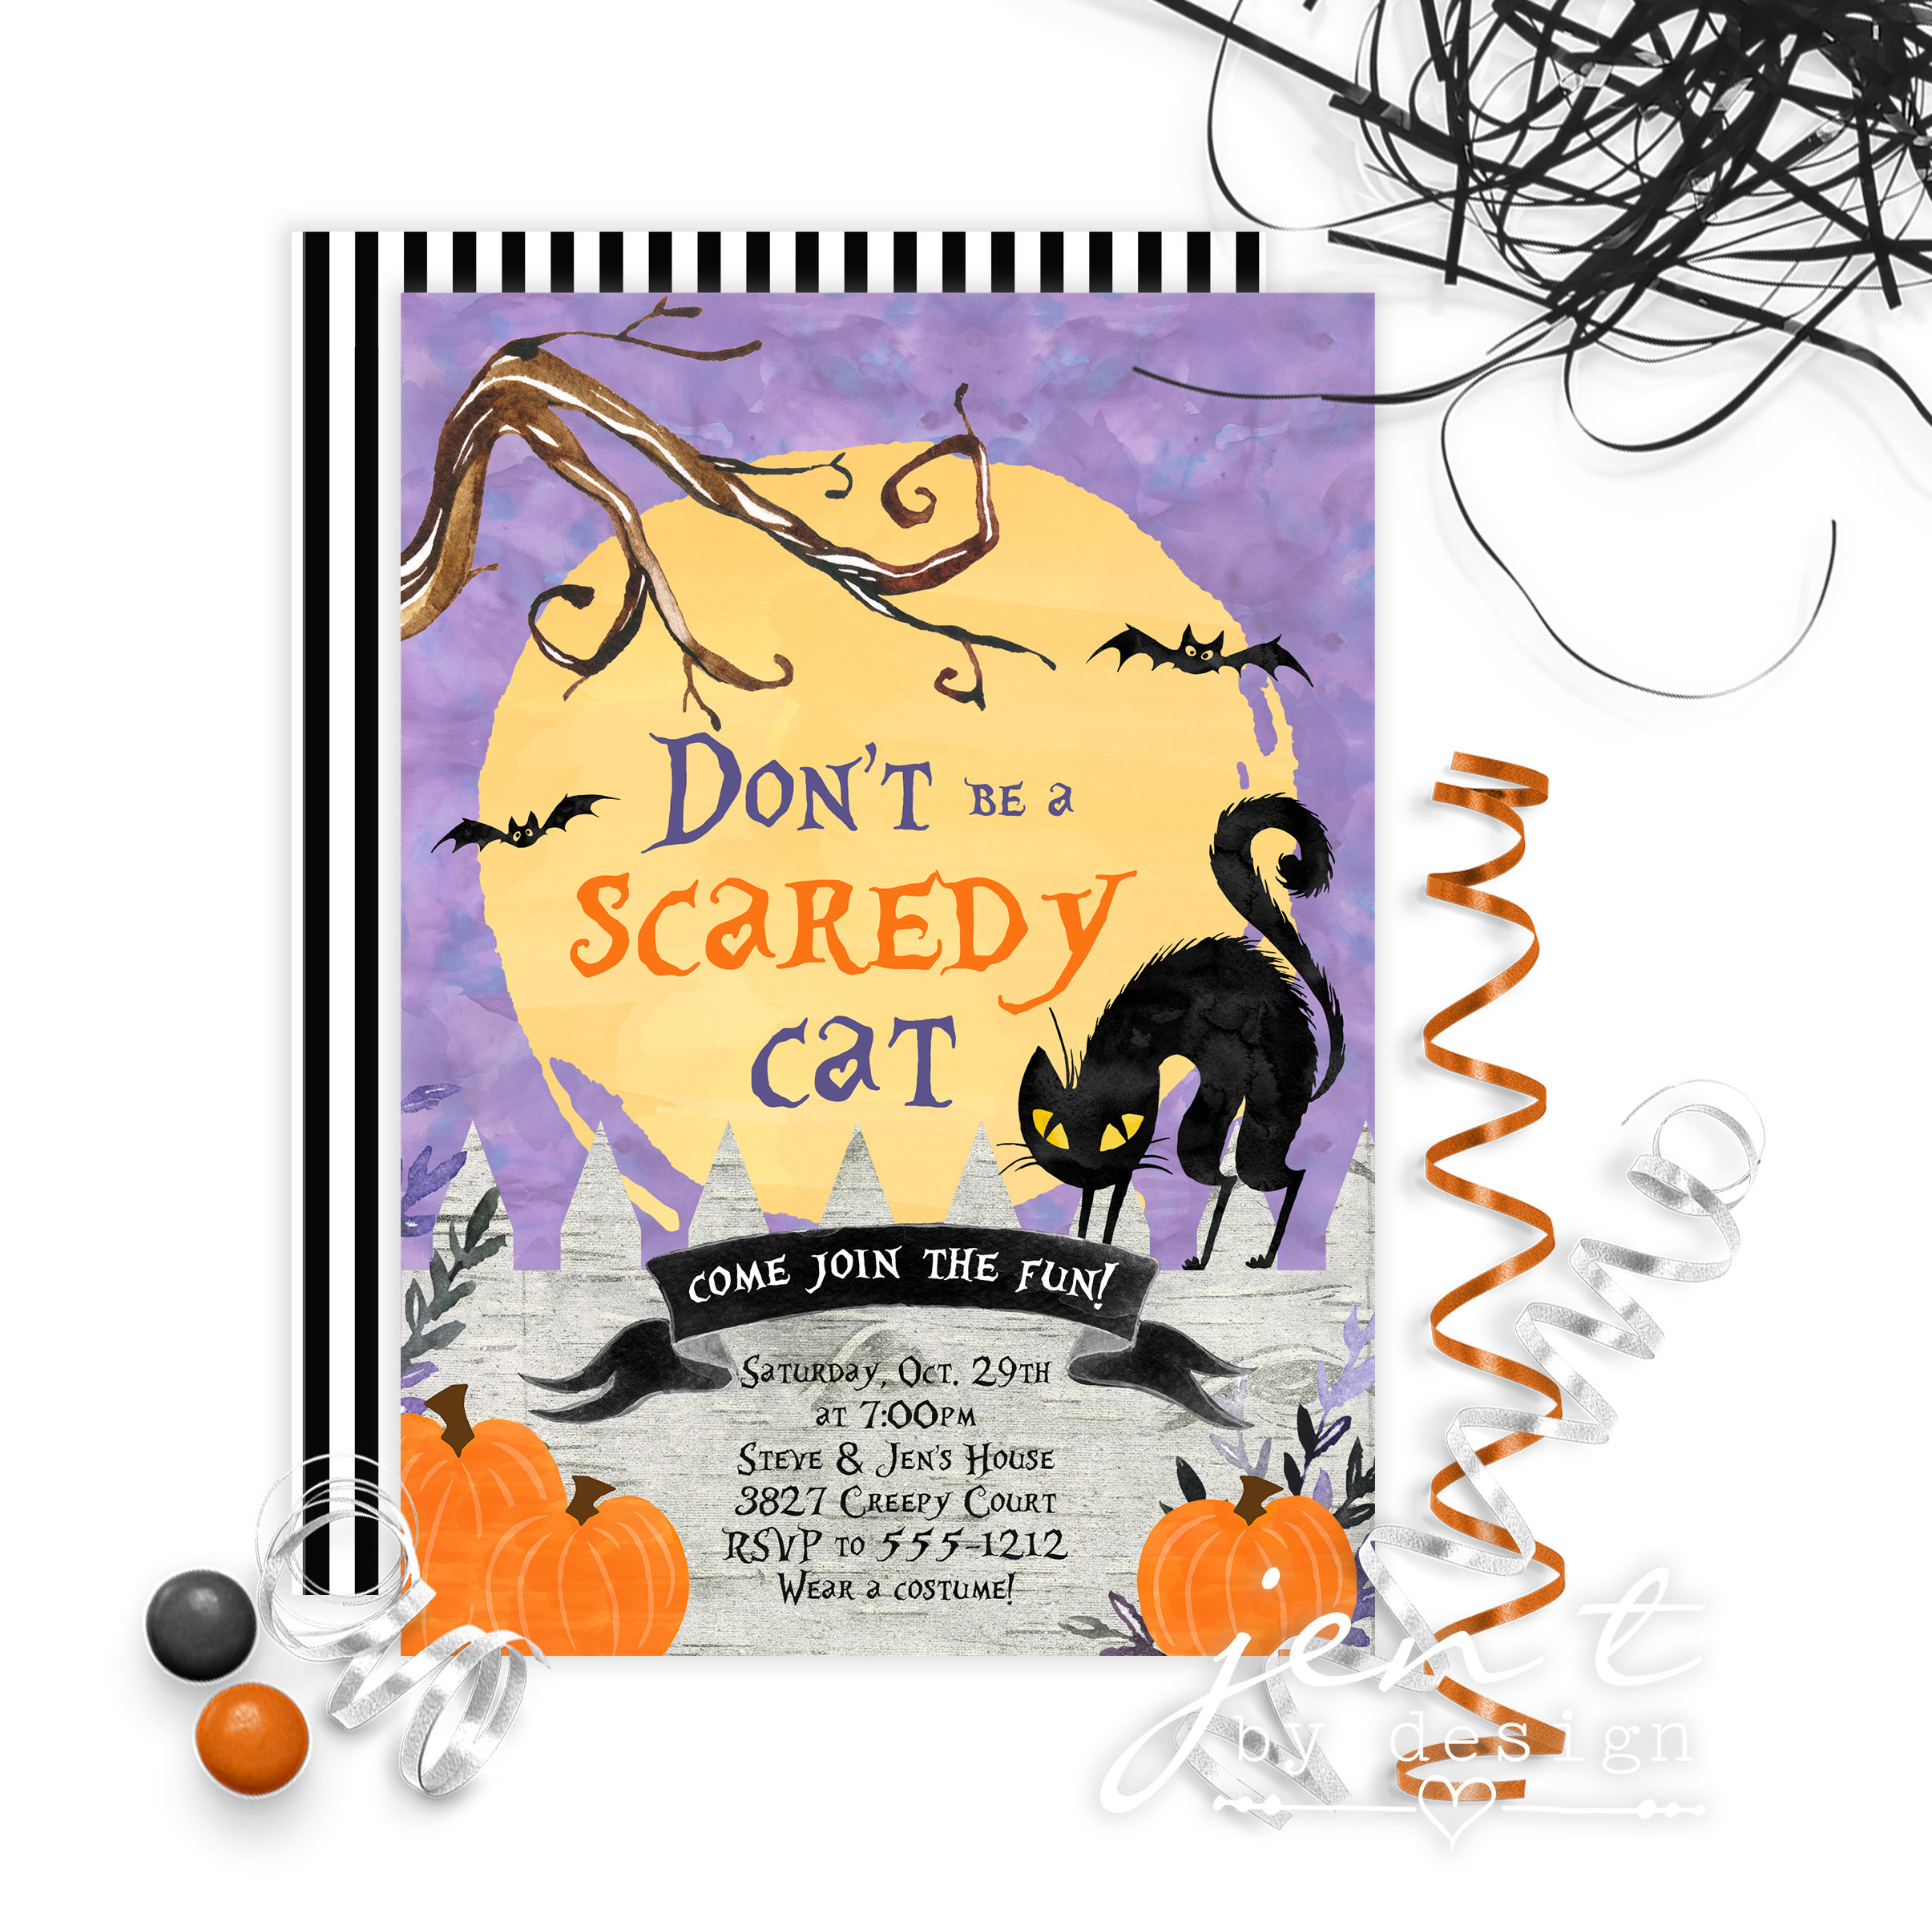 Don't be a scaredy cat halloween party invitation from Jen T by Design / from Halloween Party Invitations that Guest Will Love / Halloween Party Printables / Printable Halloween Invitations / as seen on Giggle Hearts www.gigglehearts.com